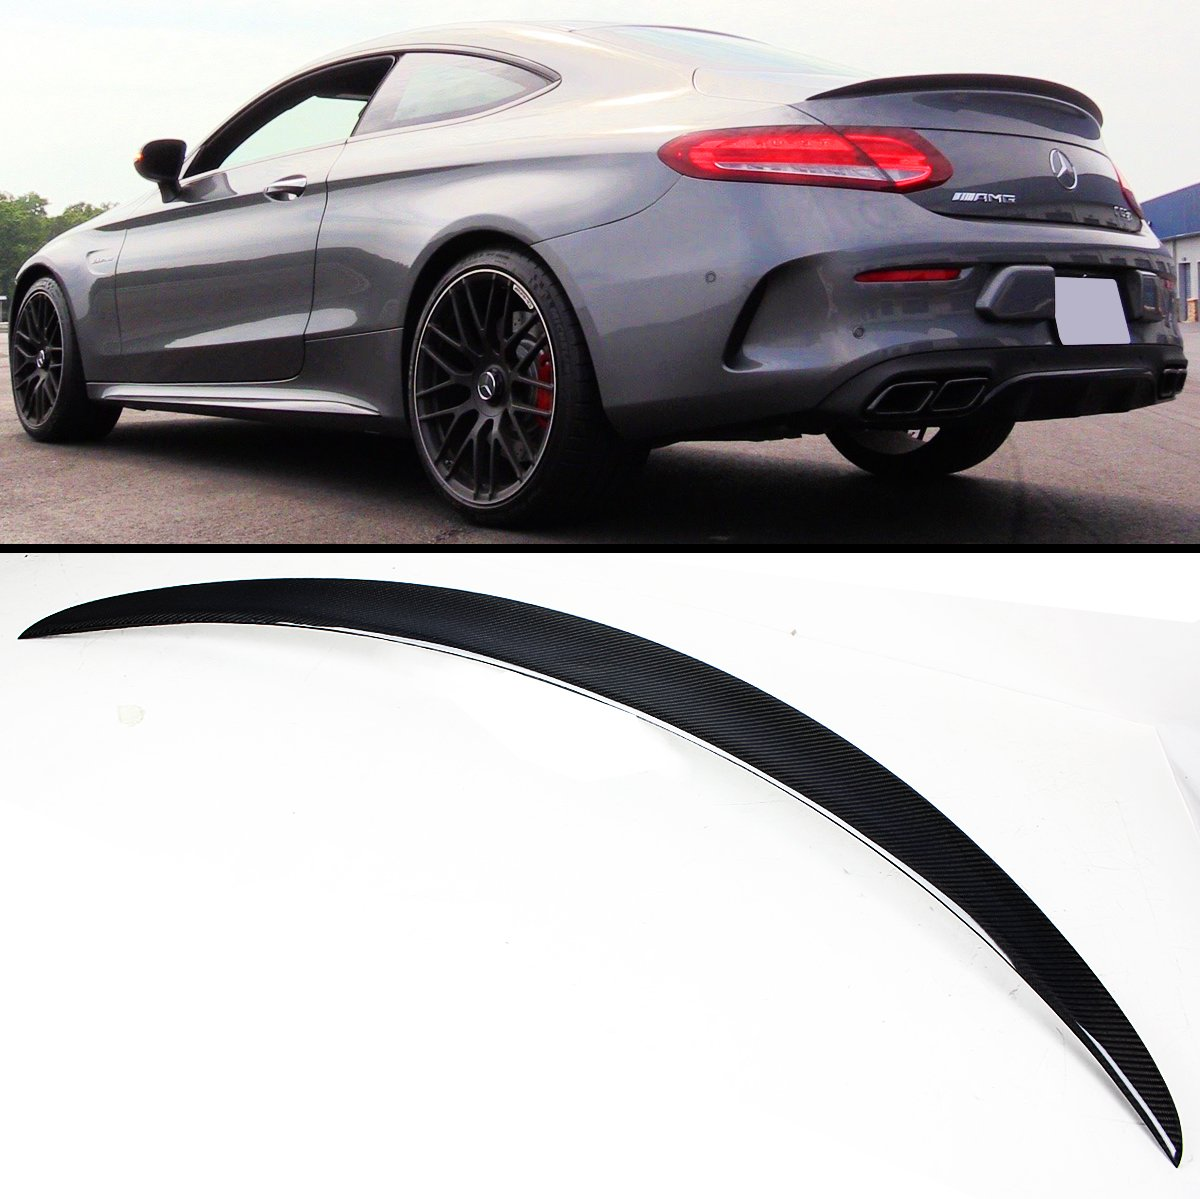 Novel Carbon Fiber Rear Trunk Spoiler Boot Lid for BMW F82 M4 Coupe 2015-17 BOOT